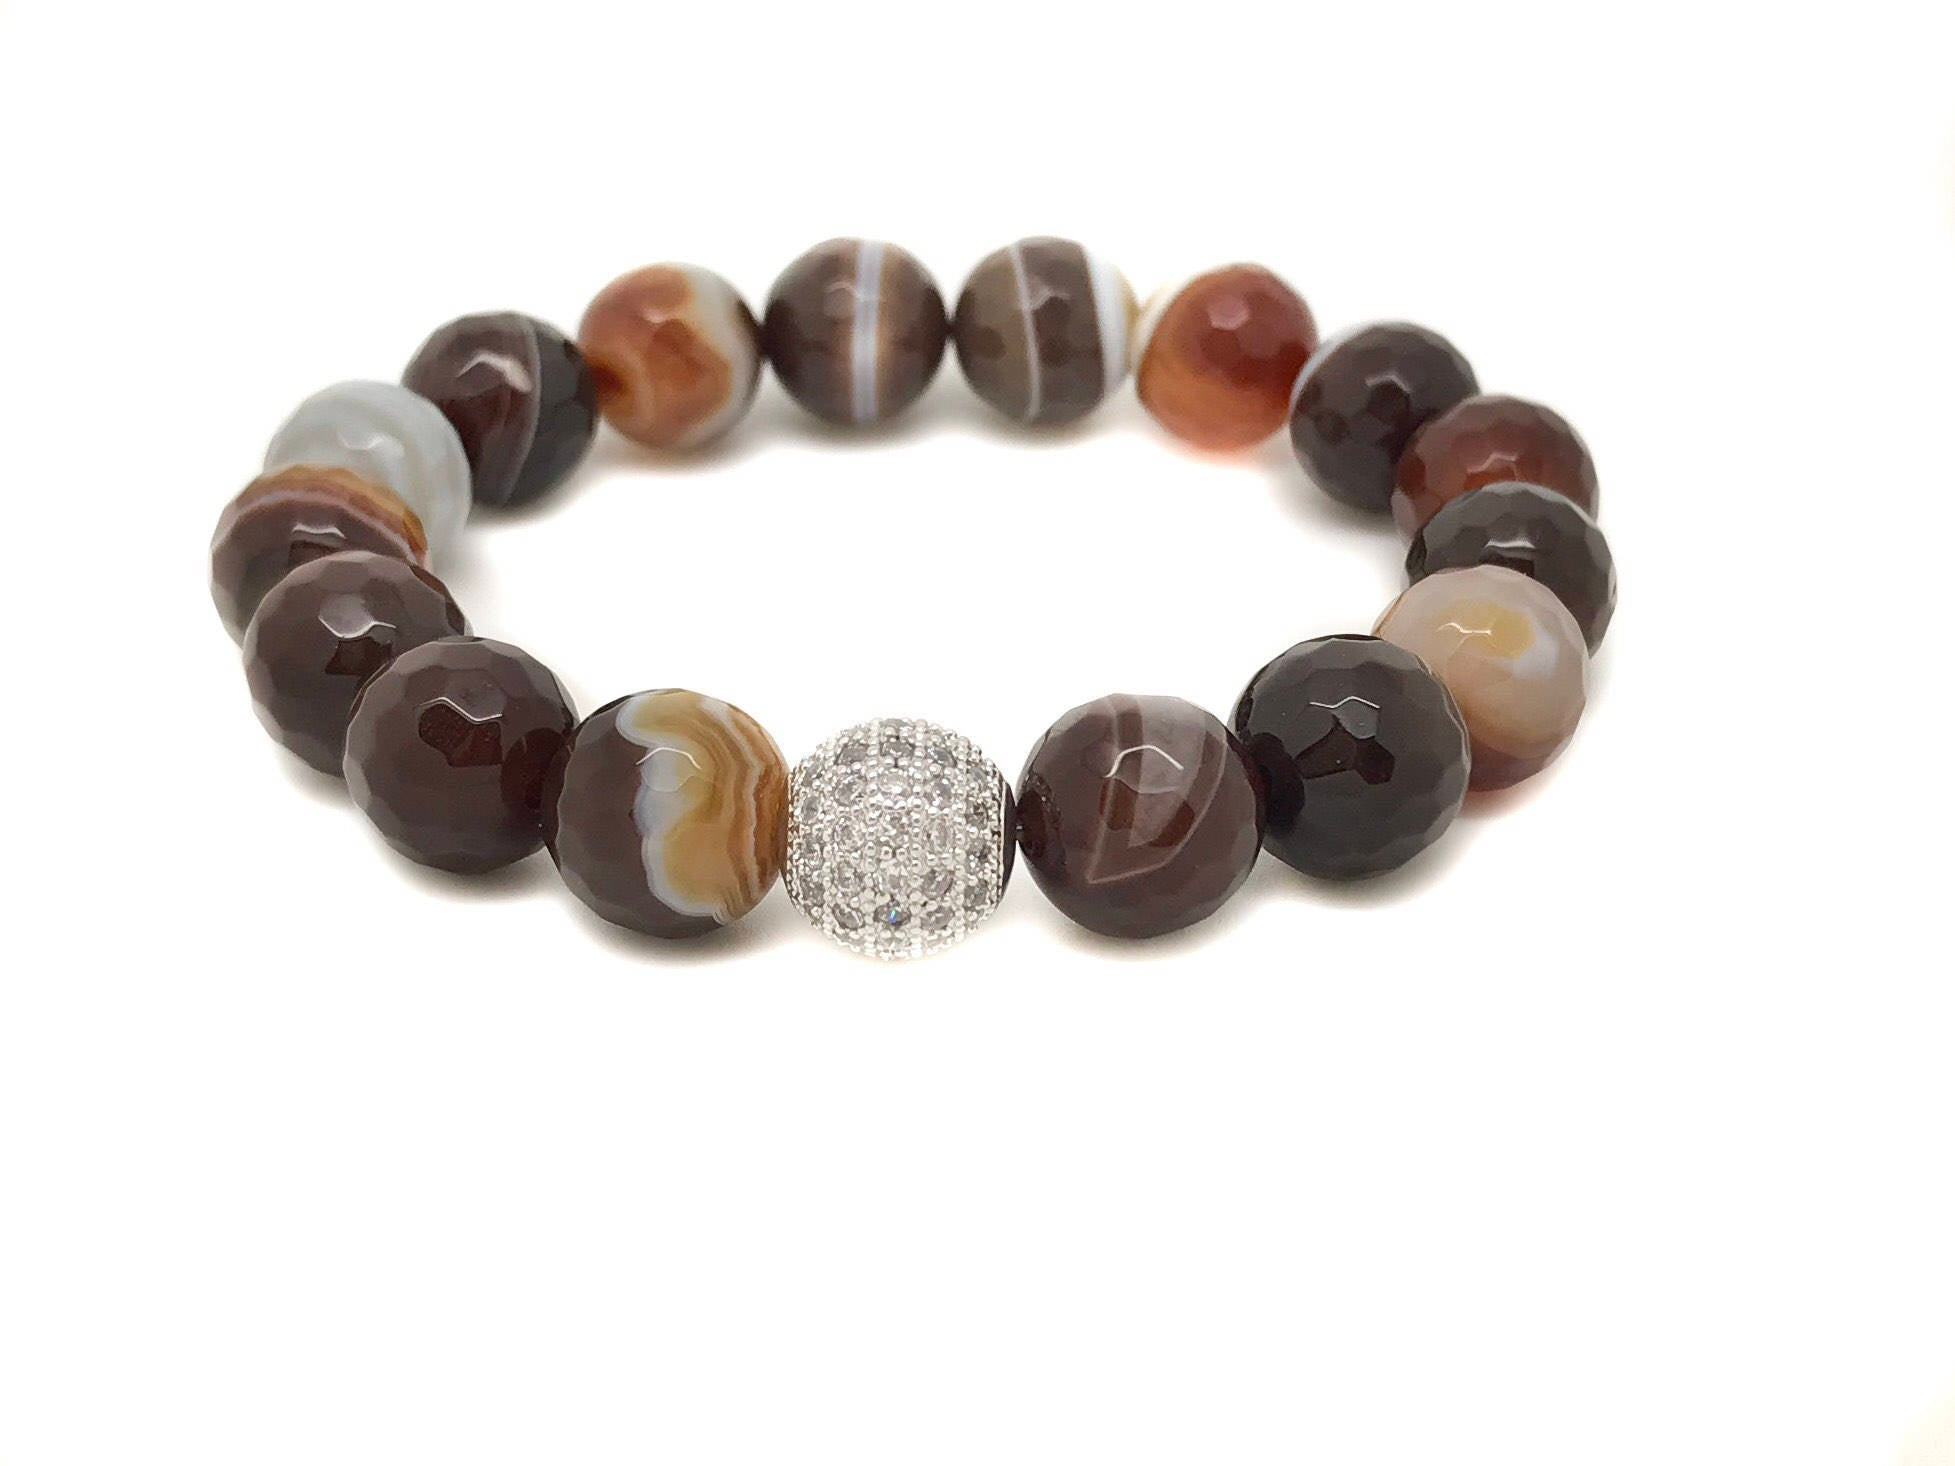 Brown Lace Agate Bracelet, Lace Agate Bracelet, Agate Woman Bracelet, Brown Bracelet, Stability Bracelet, Brown Agate Jewelry